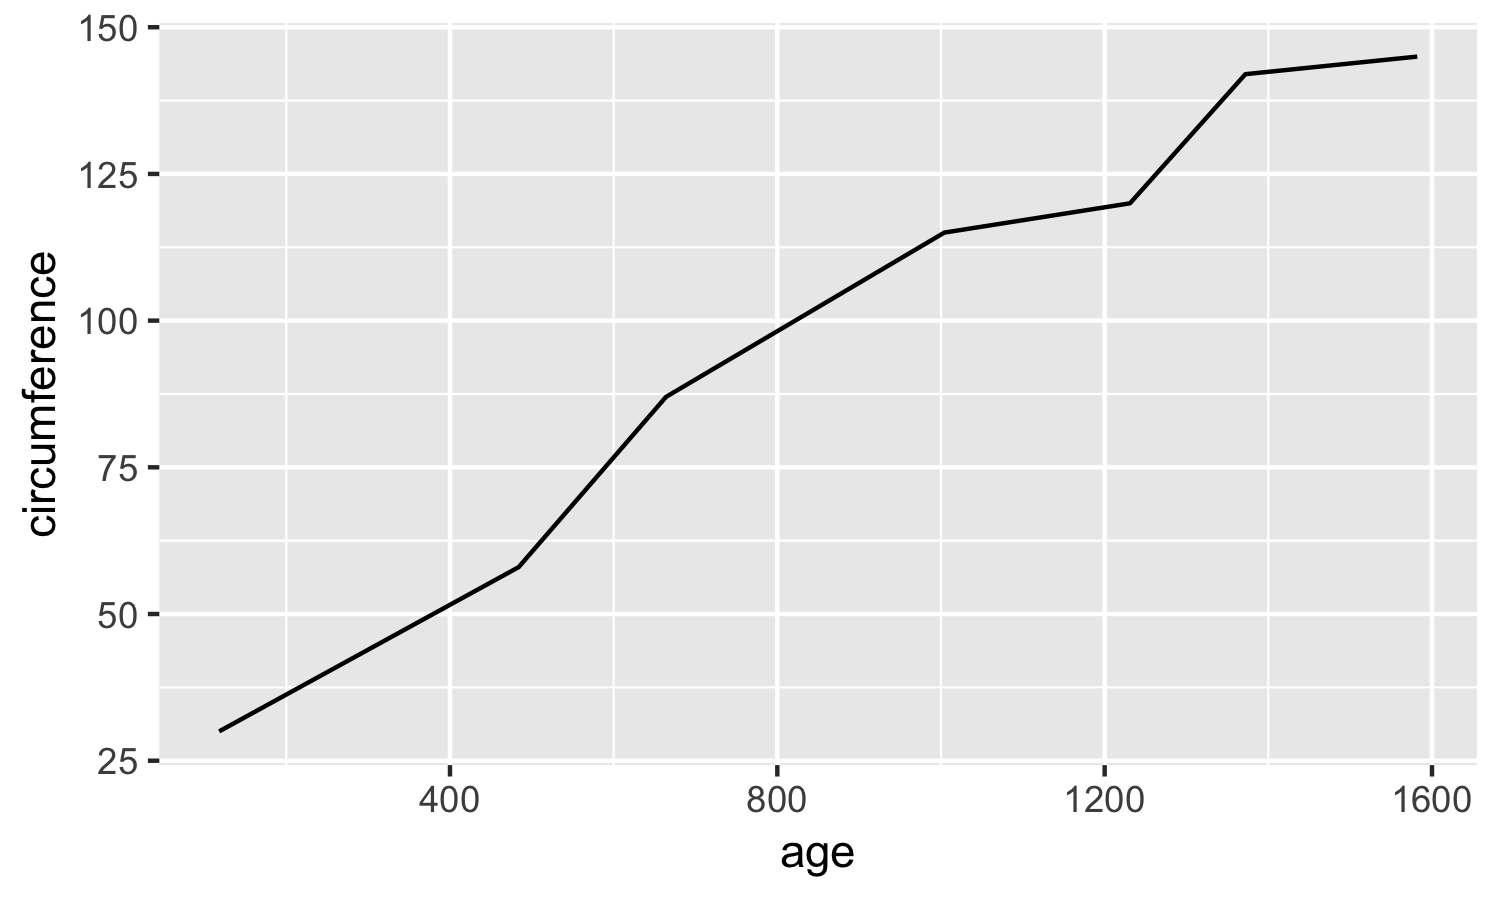 A Detailed Guide to Plotting Line Graphs in R using ggplot